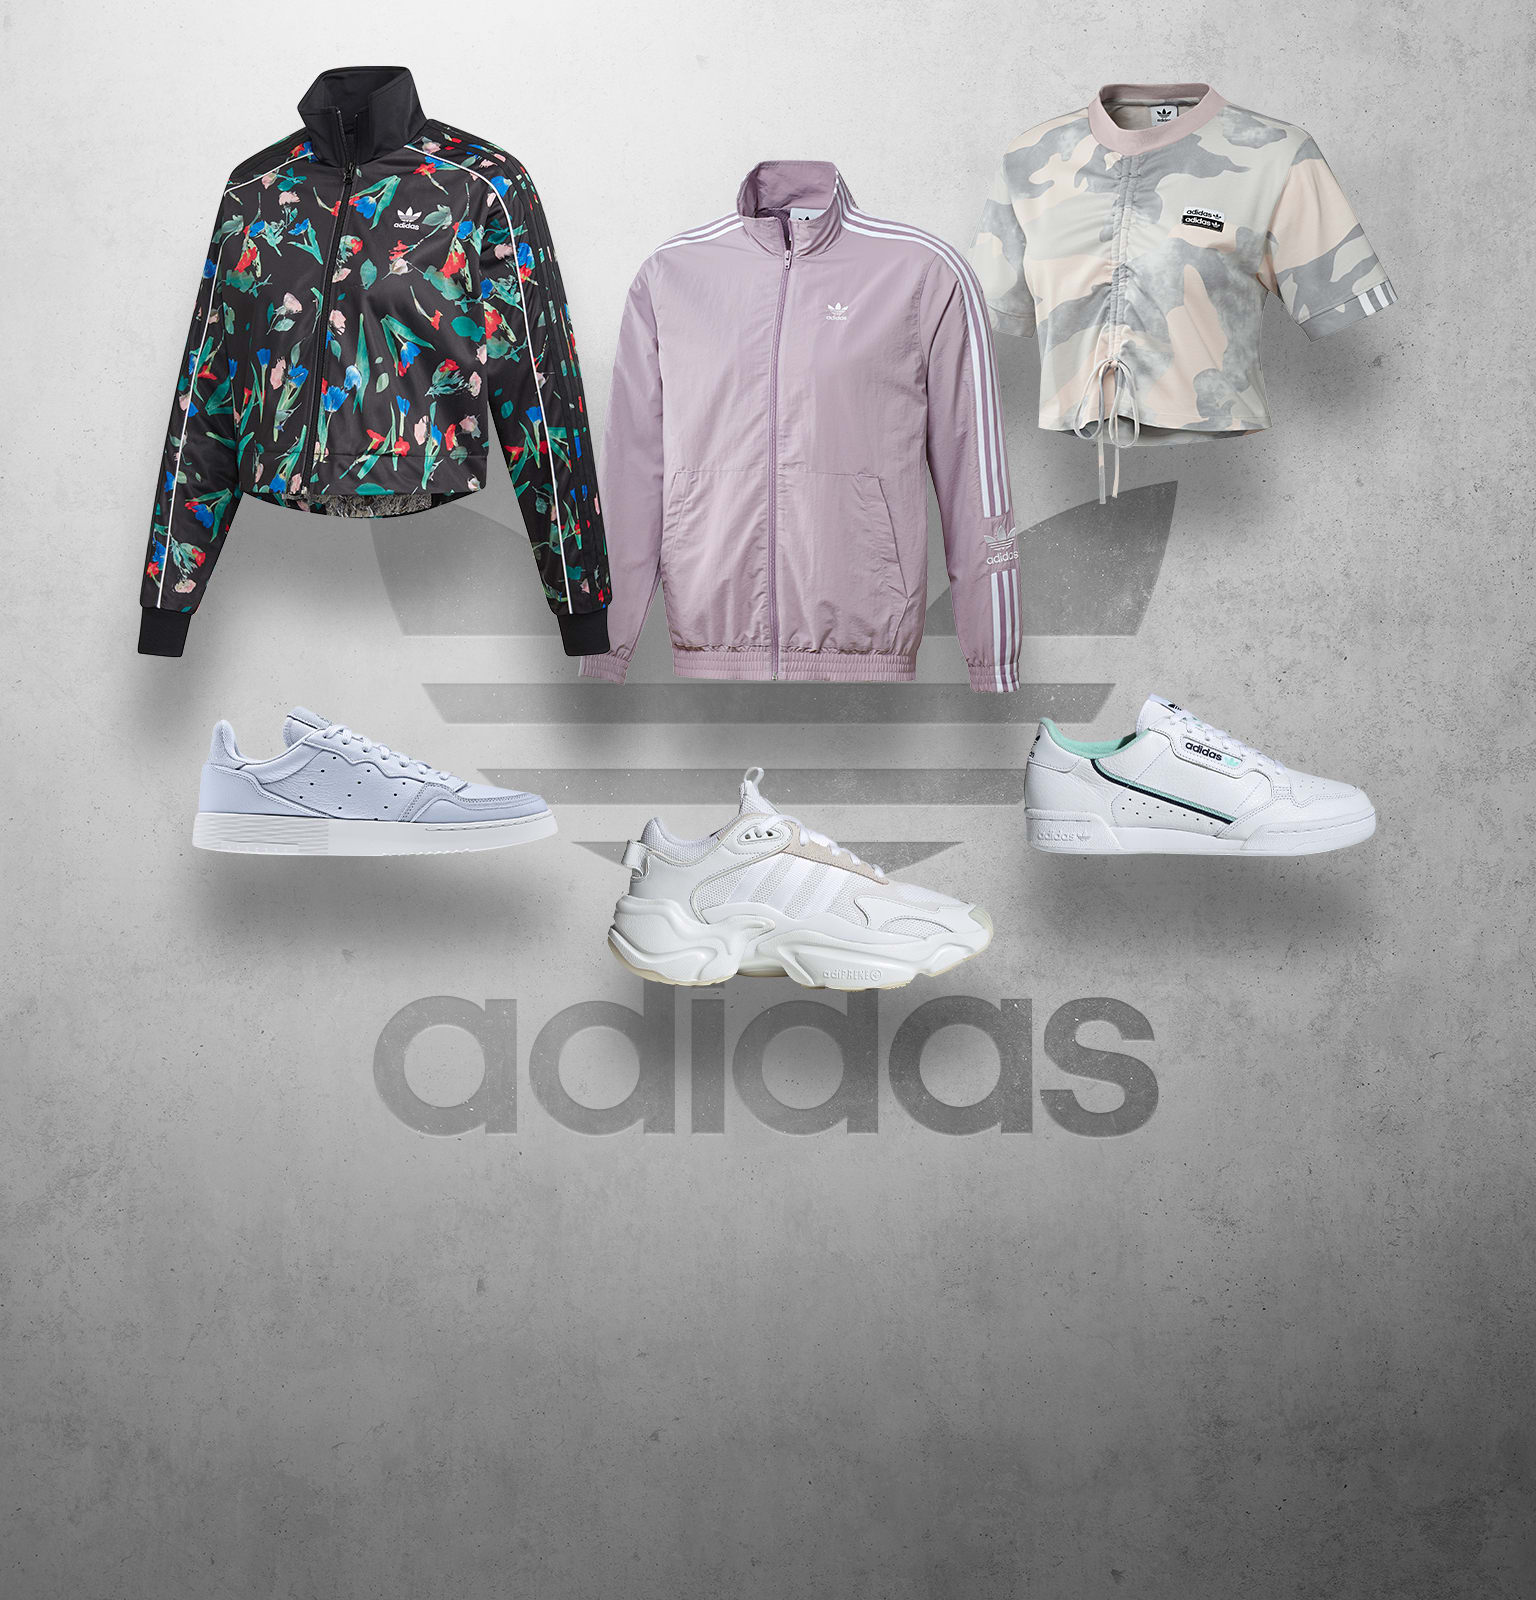 Outlet | adidas Officiella Butik